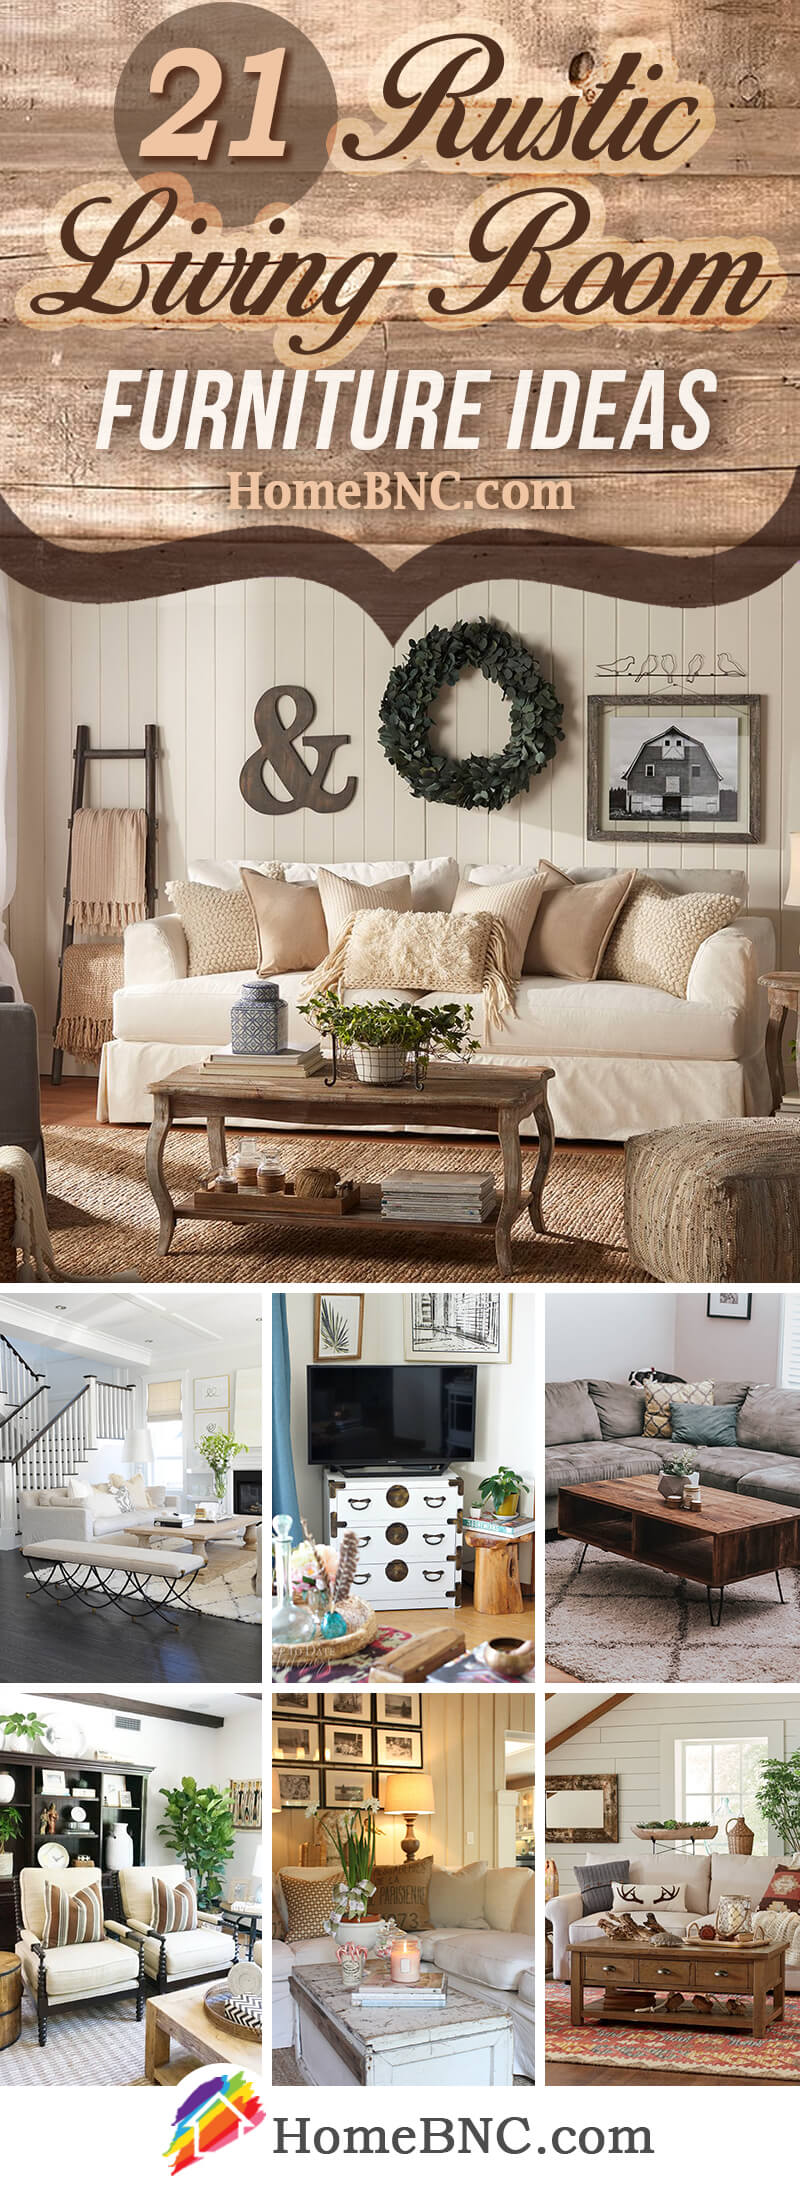 21 Best Rustic Living Room Furniture Ideas And Designs For